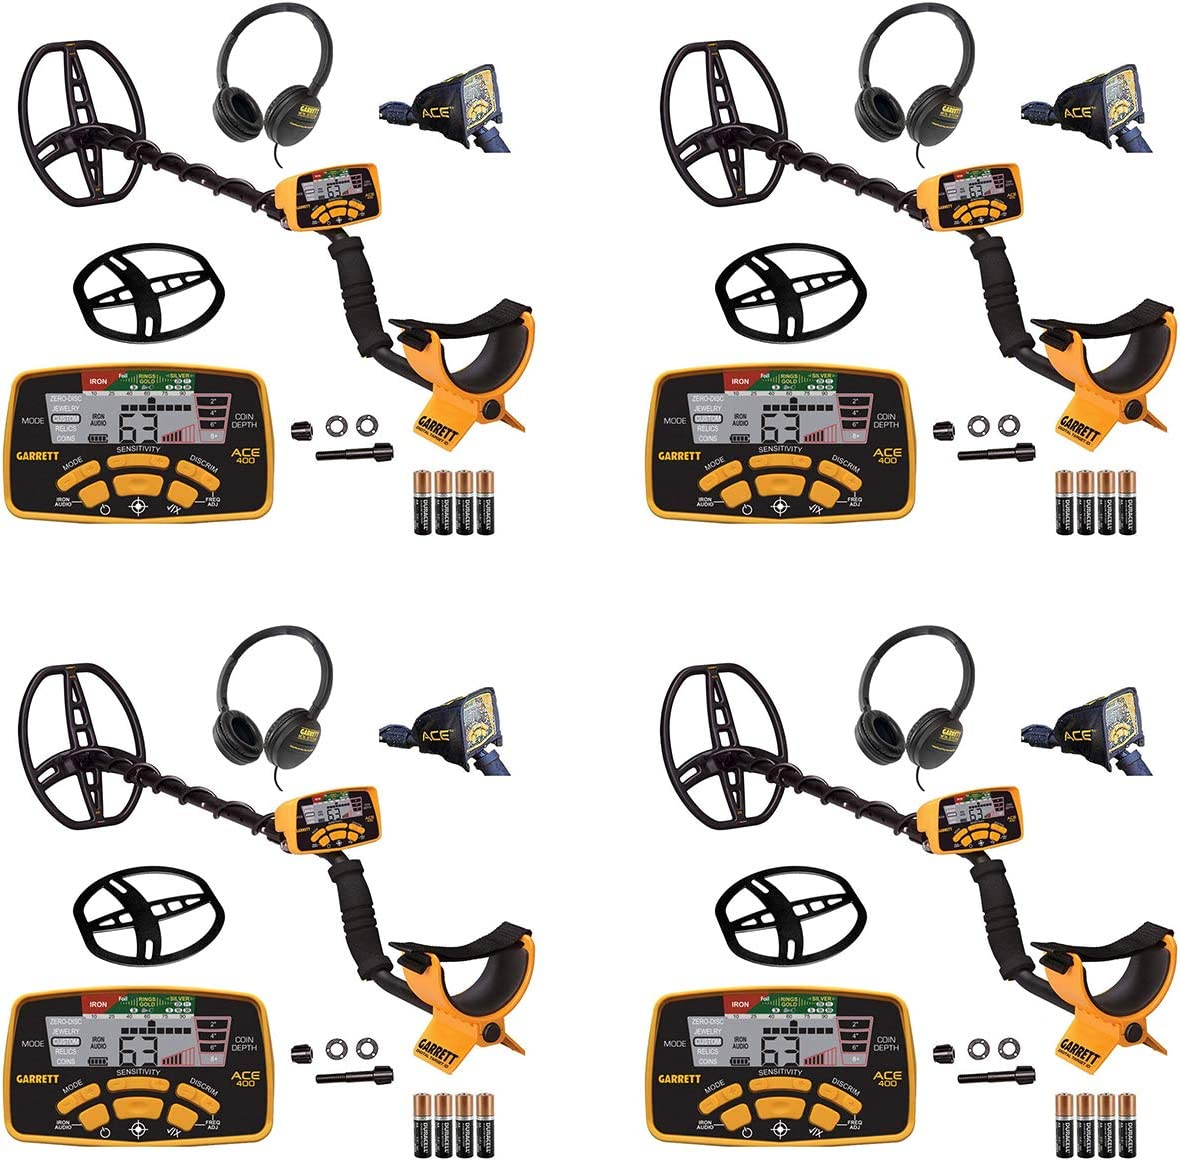 Garrett Ace 400 Metal Detector with Waterproof Coil and Headphone Plus Accessories Four Pack